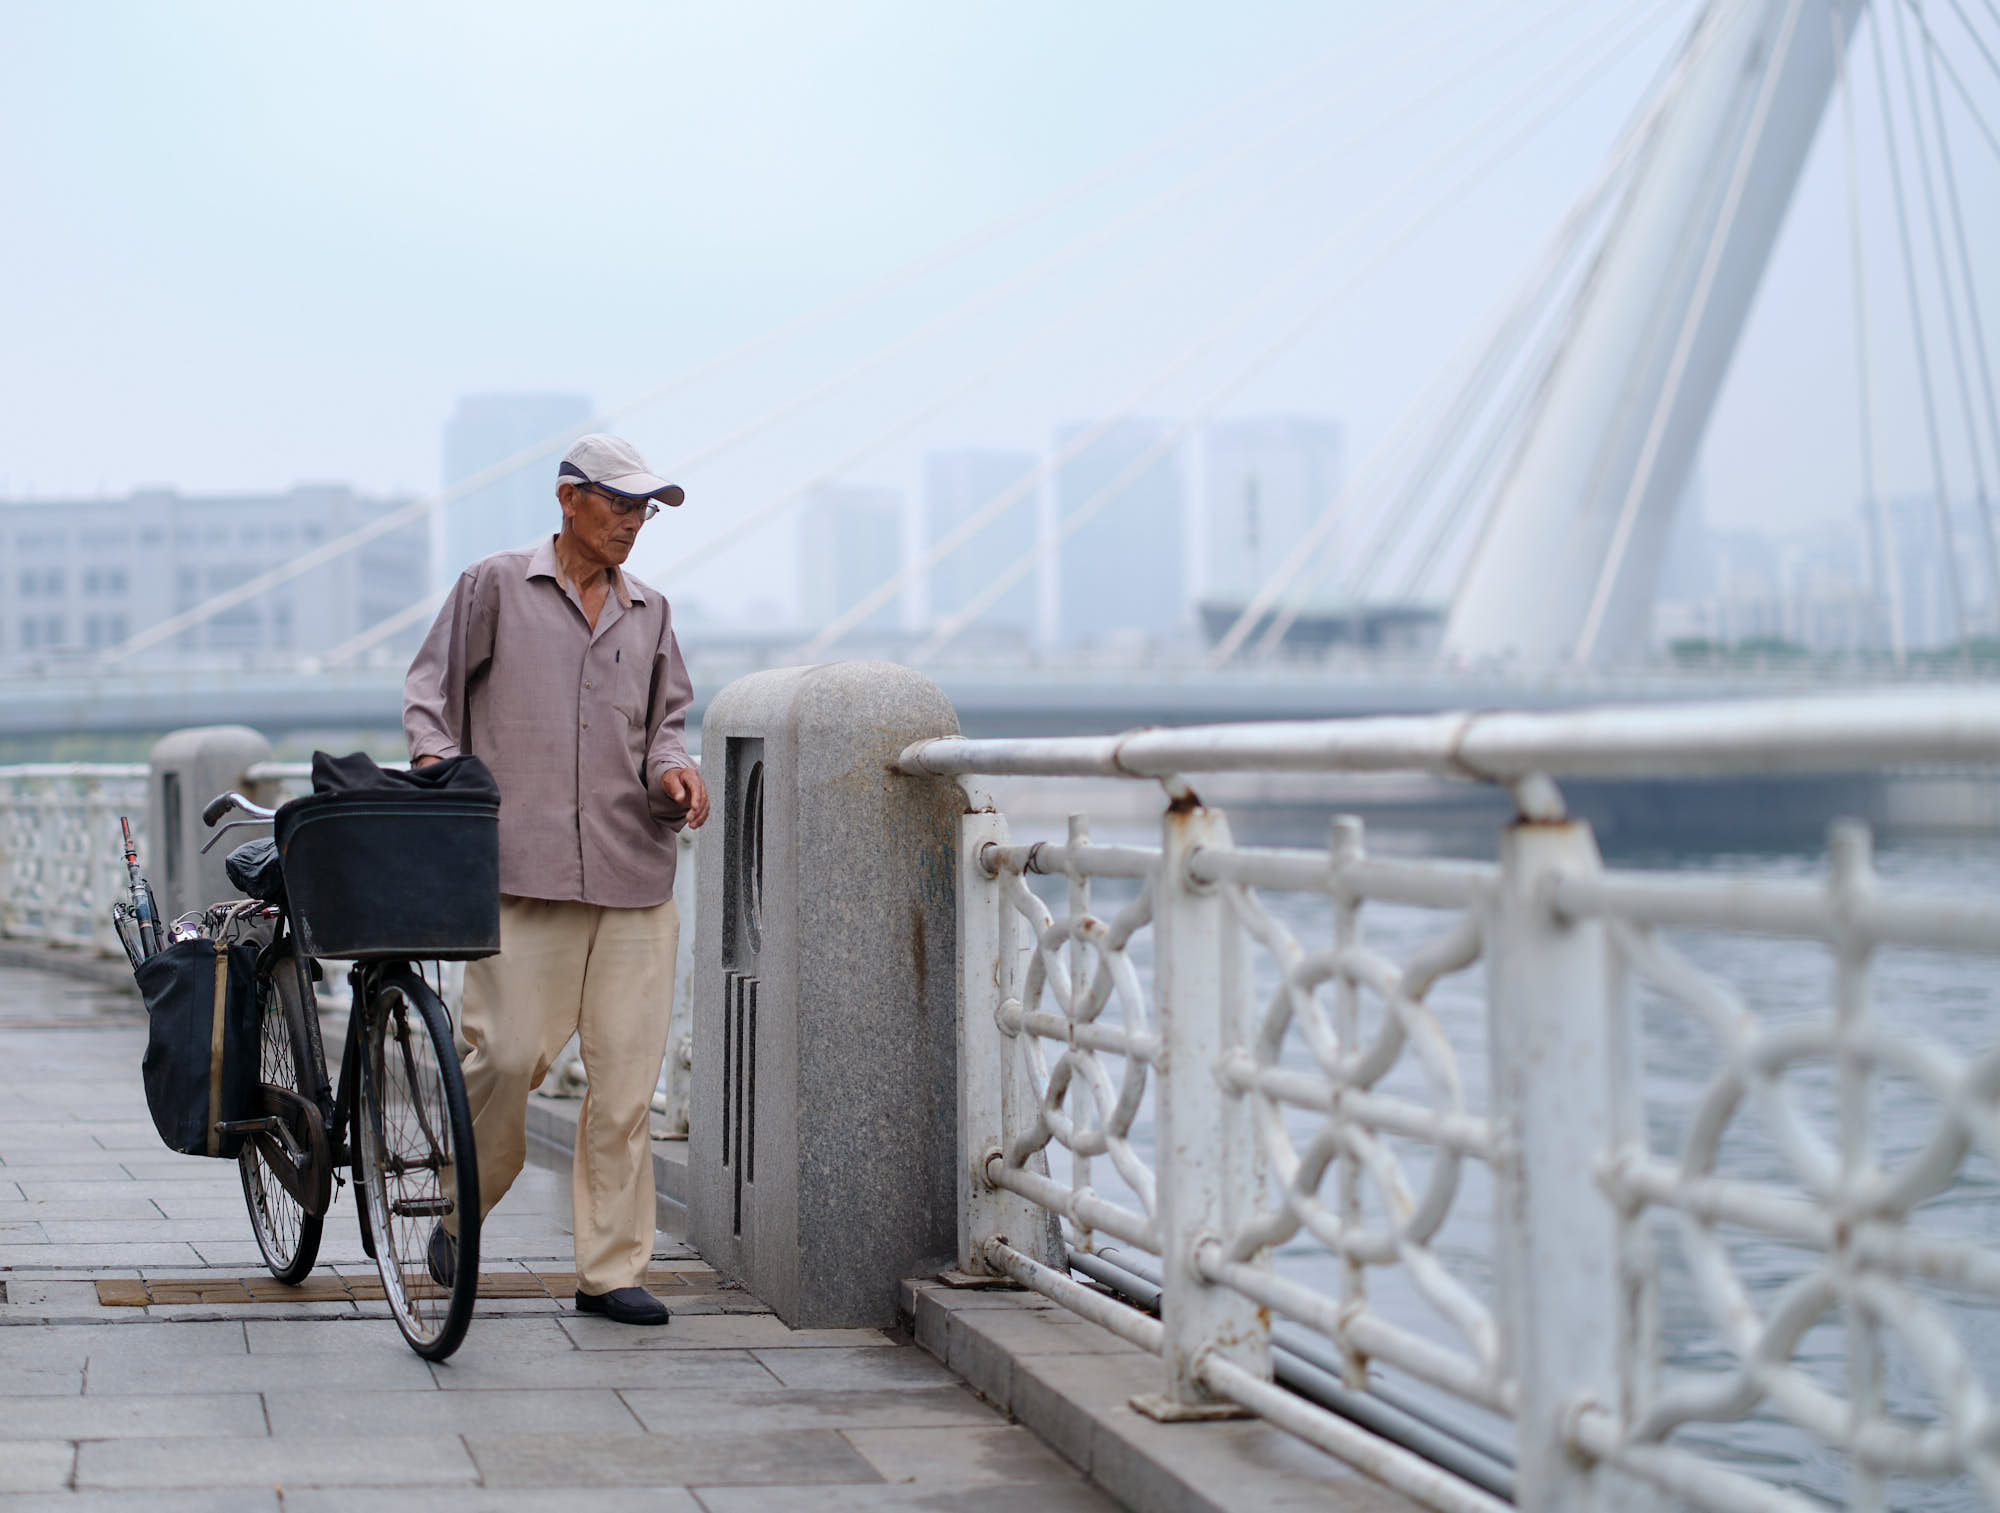 Older man walking his bicycle along the river in Tianjin, China